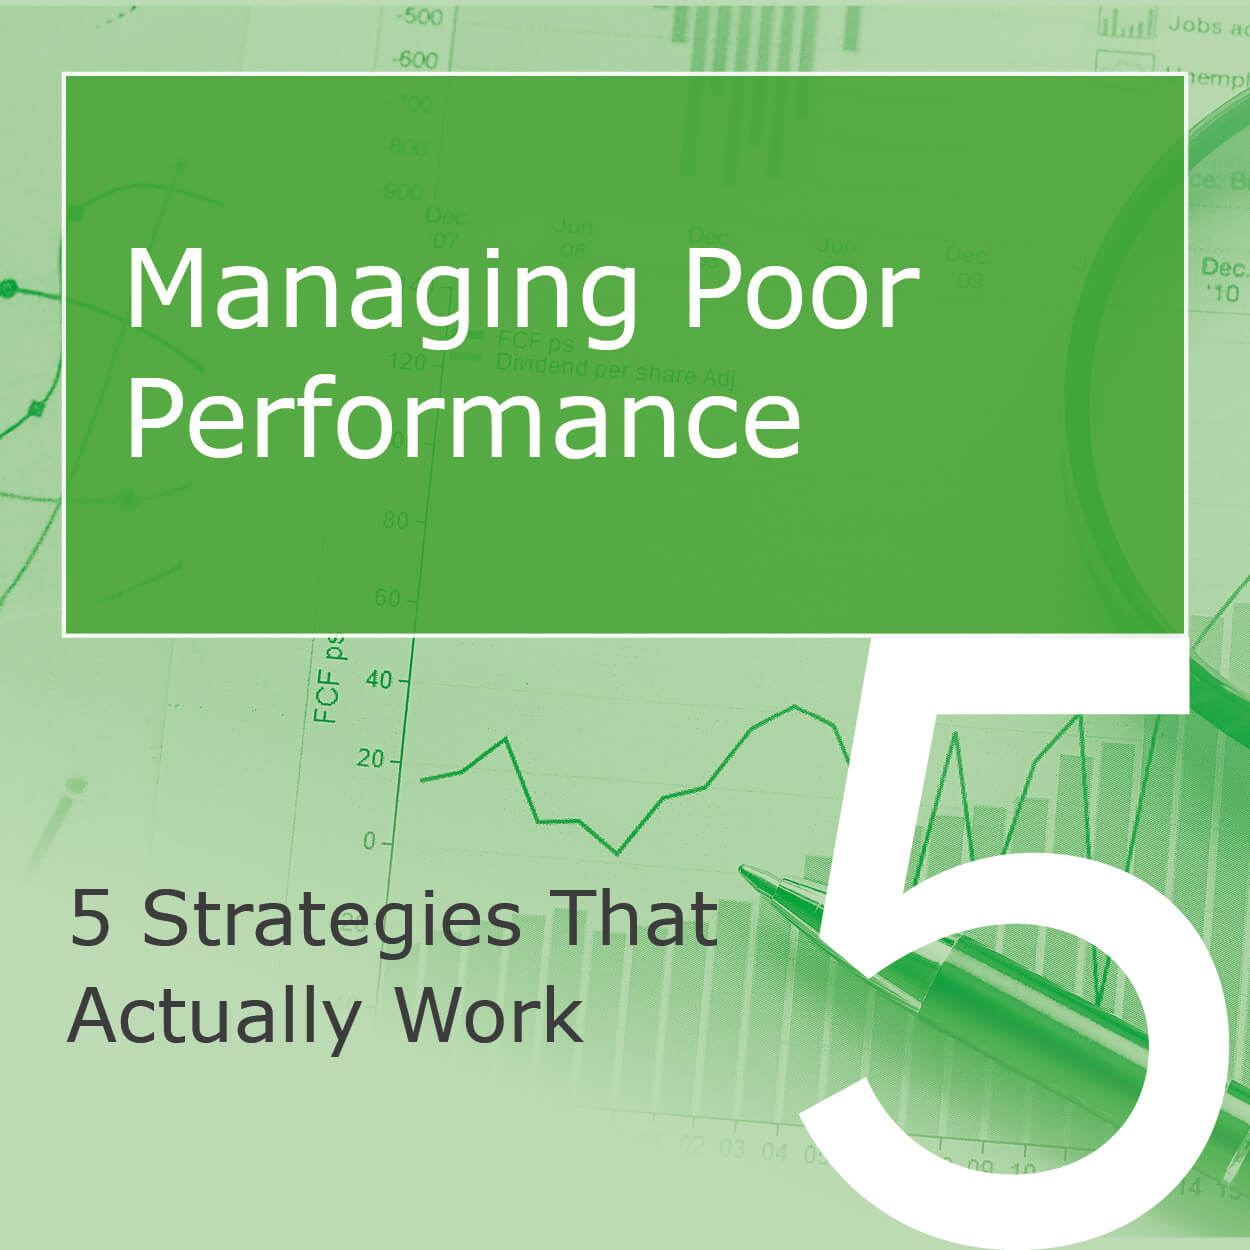 Managing poor performance website teaser 300px x 300px